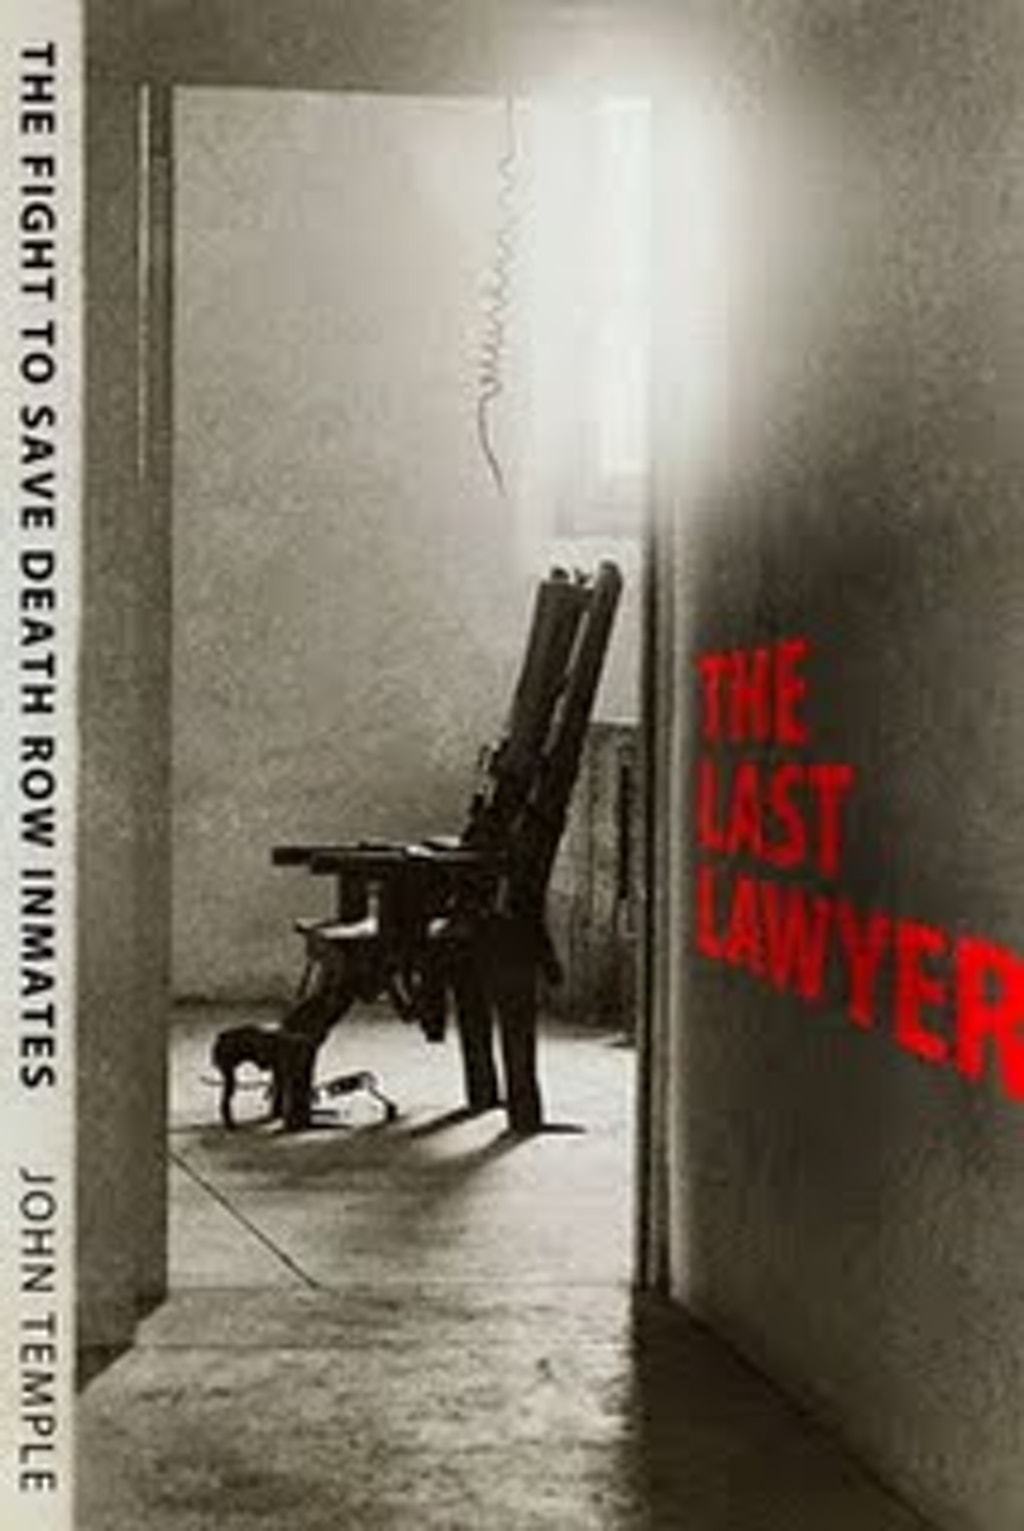 BOOKS: The Last Lawyer--The Fight to Save Death Row Inmates